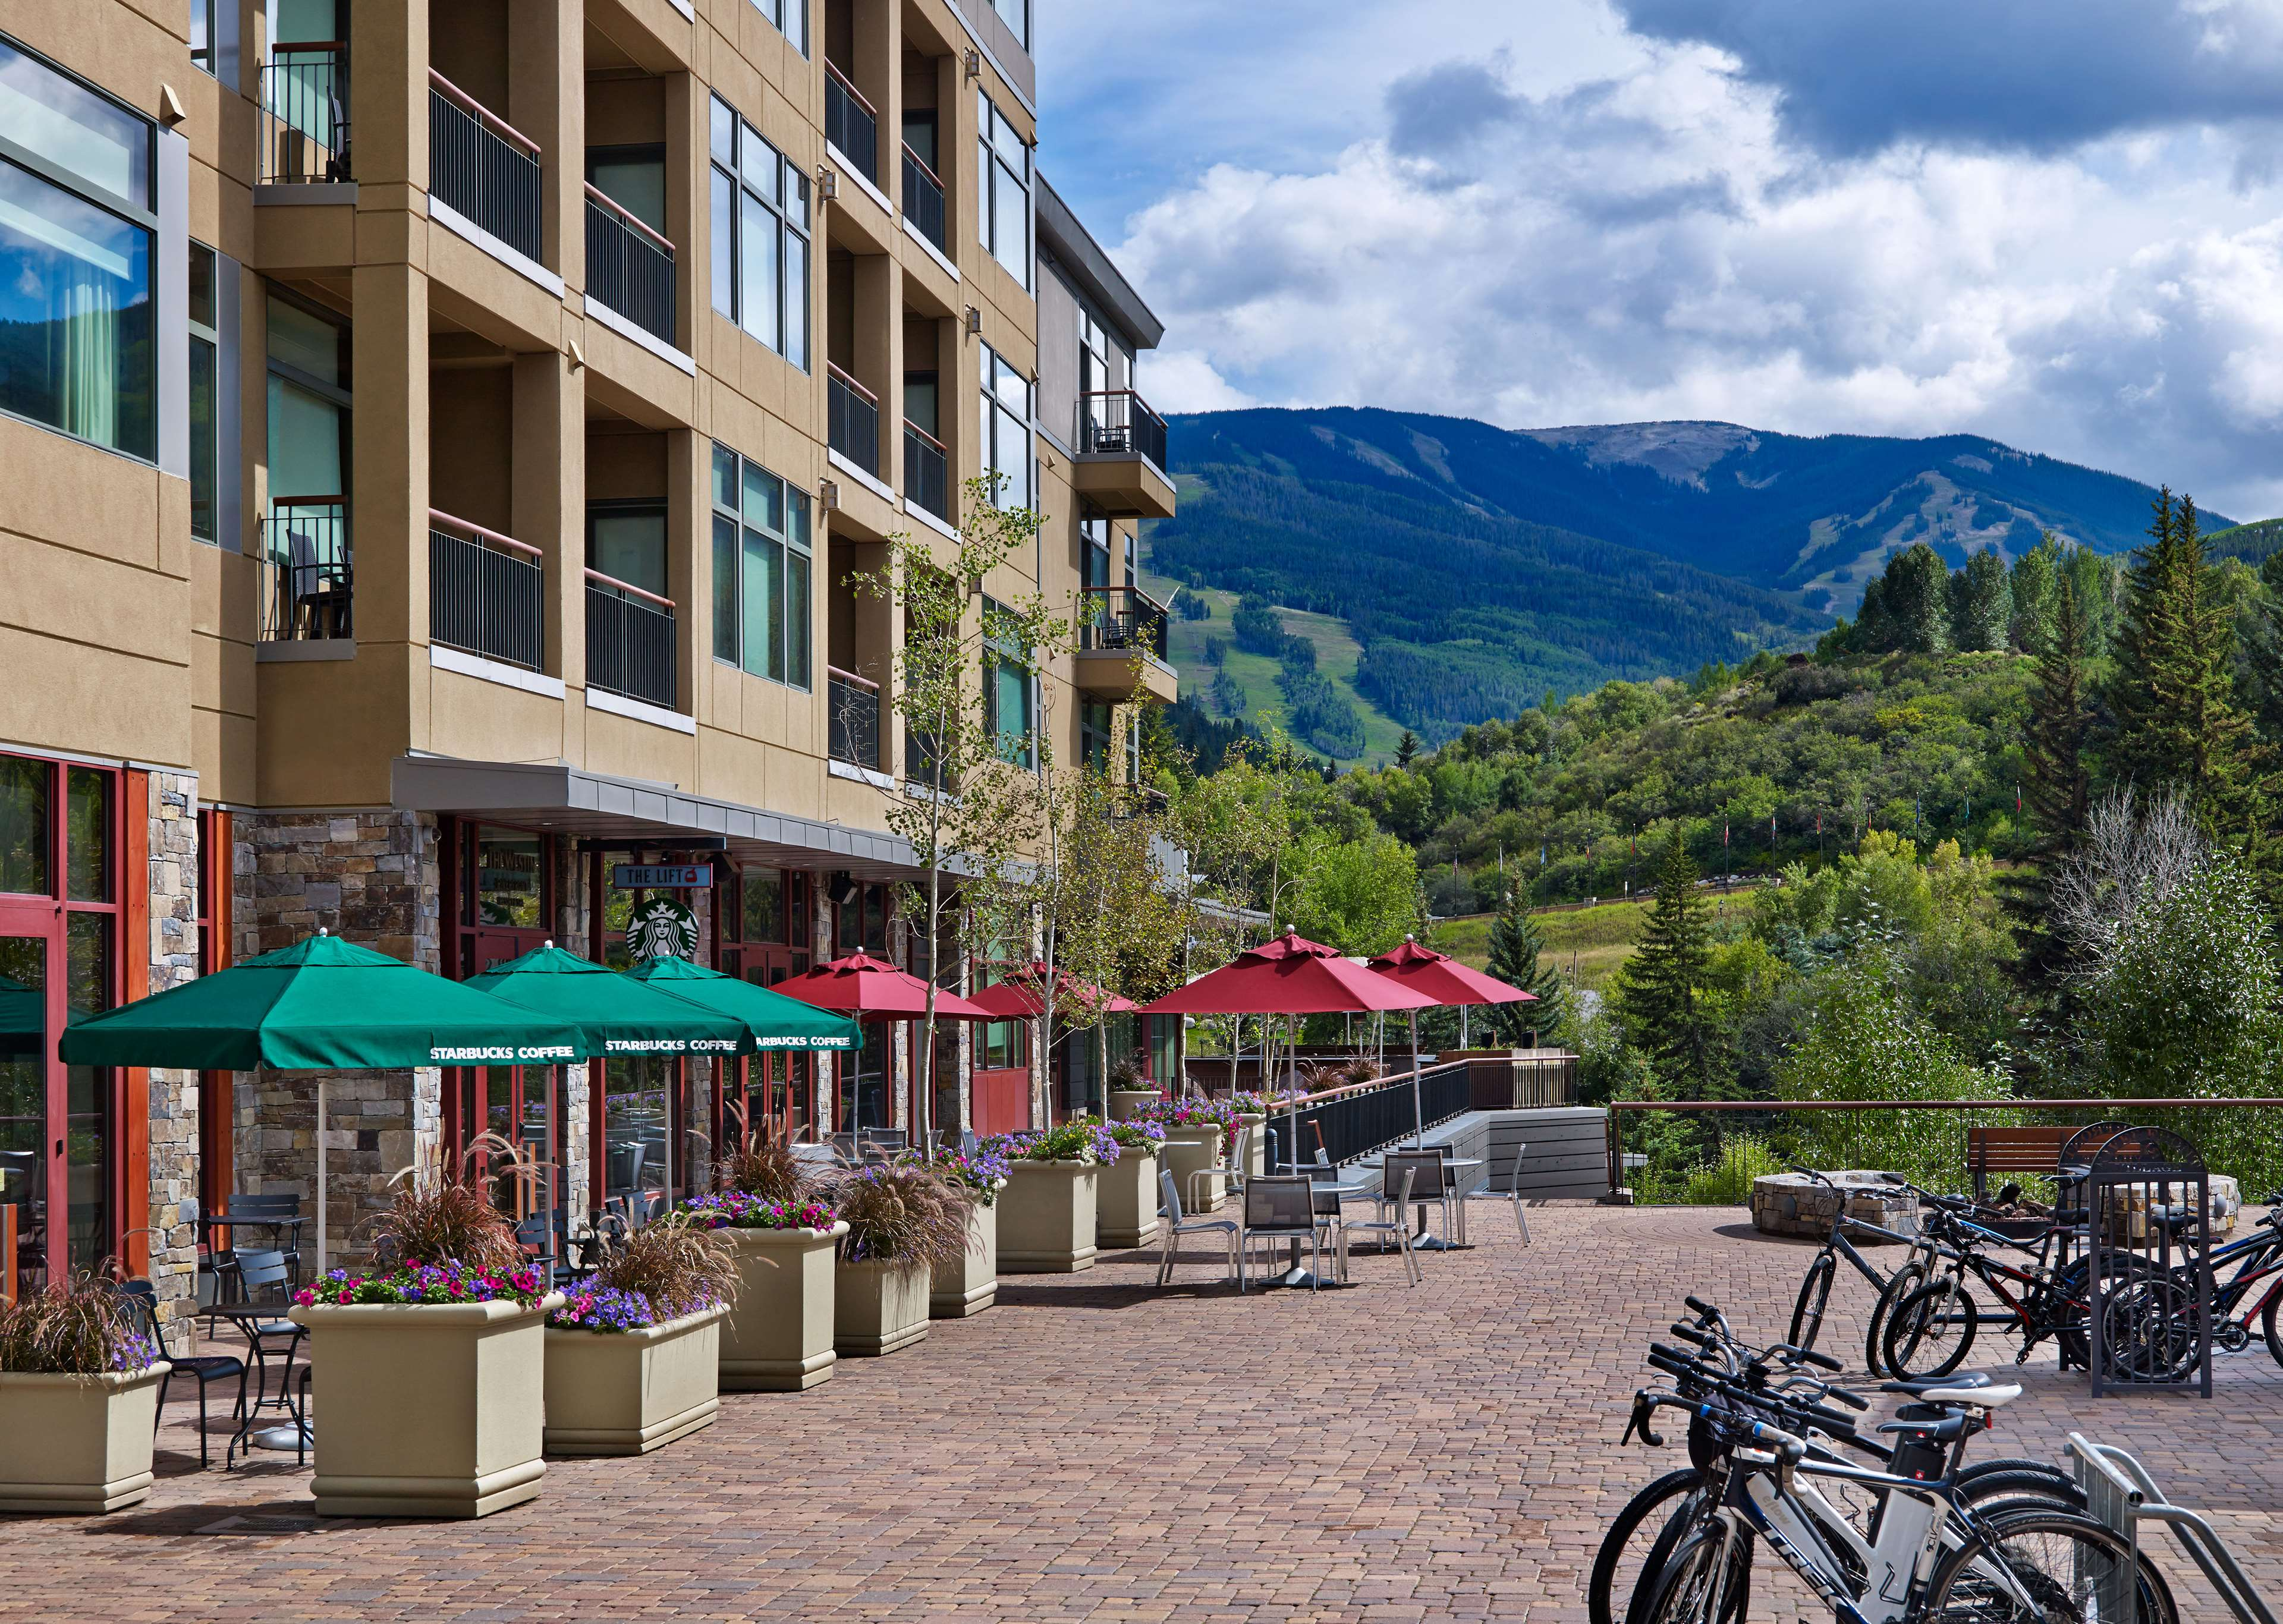 The Westin Riverfront Resort & Spa, Avon, Vail Valley image 1